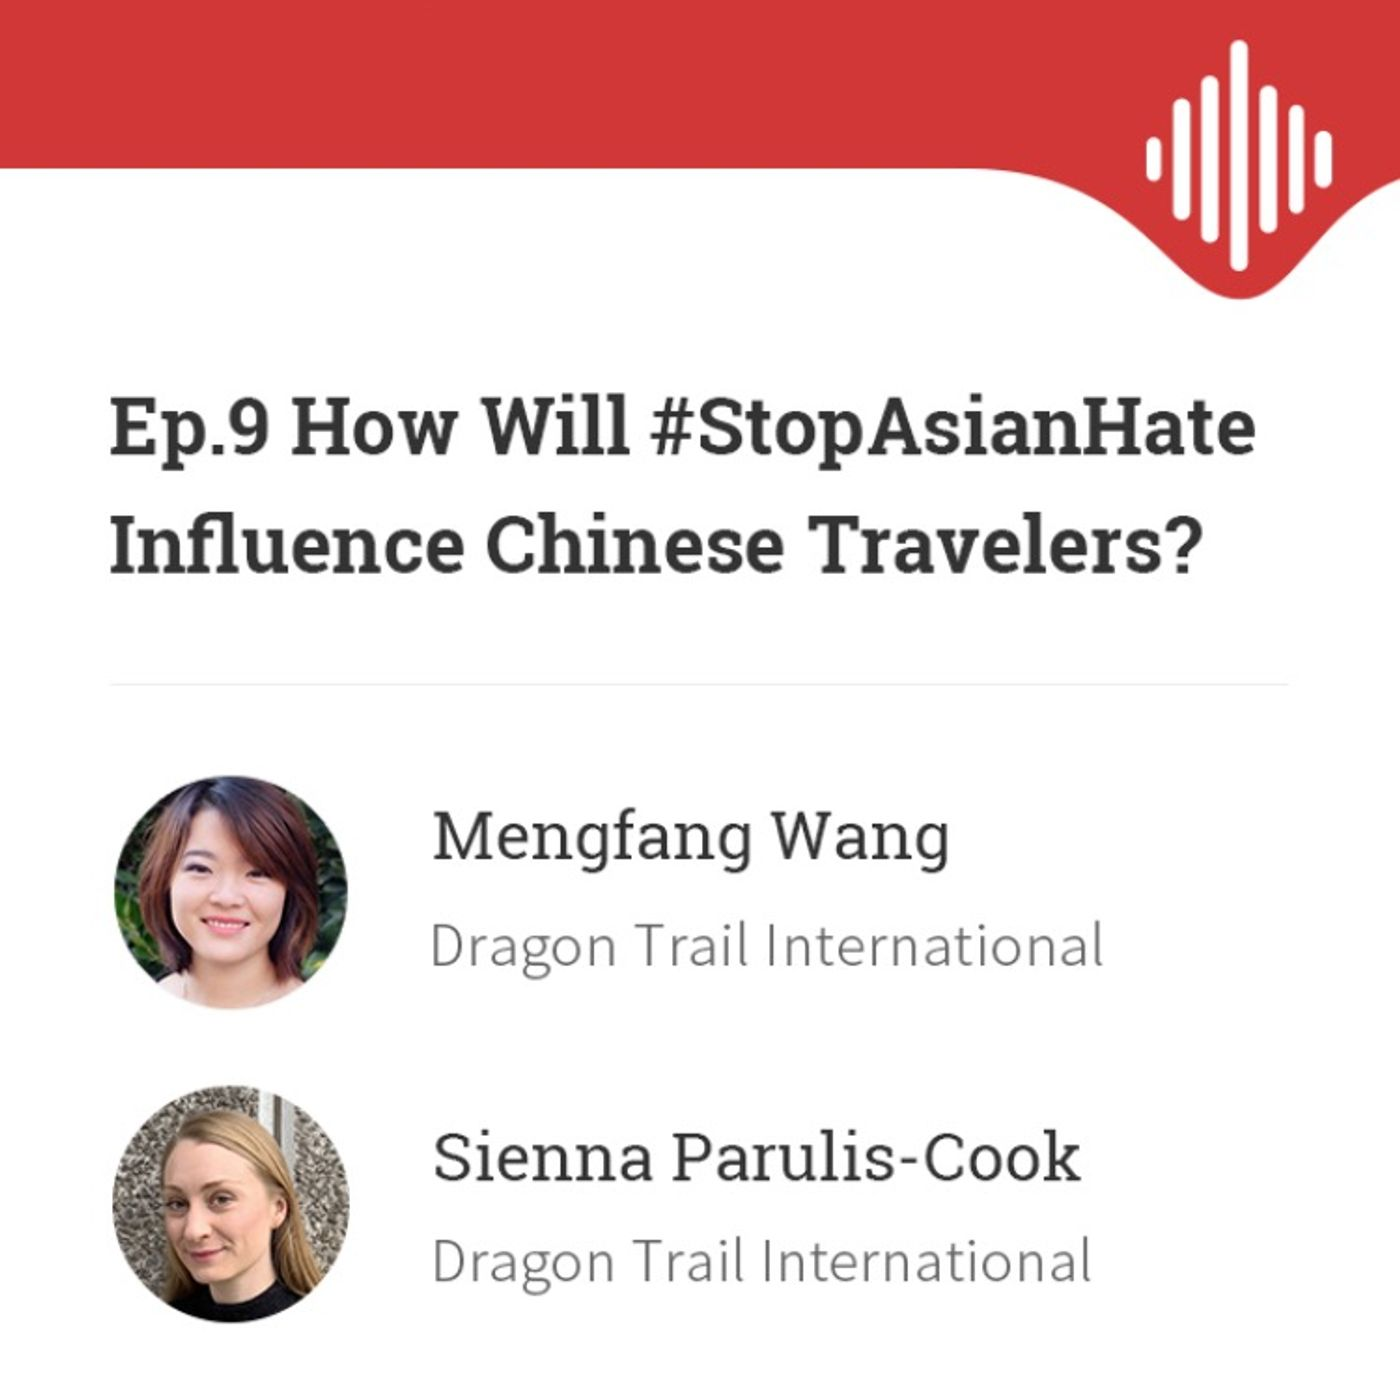 Ep.9 How Will #StopAsianHate Influence Chinese Travelers, with Mengfang Wang and Sienna Parulis-cook of Dragon Trail